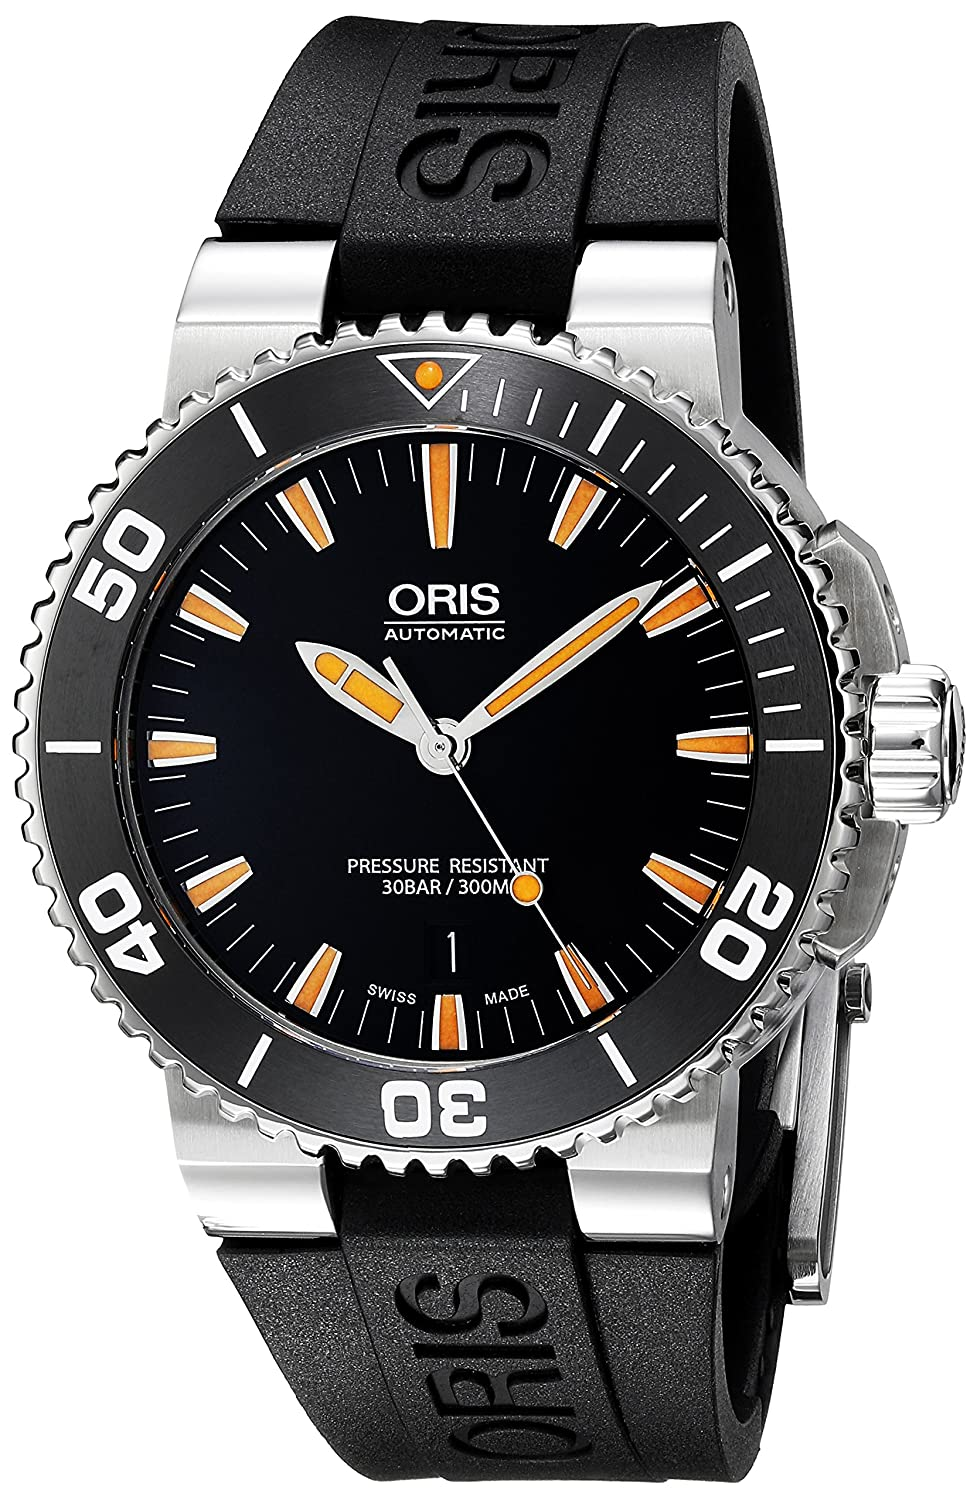 Oris Men s Swiss Automatic Stainless Steel Casual Watch Model 73376534159RS